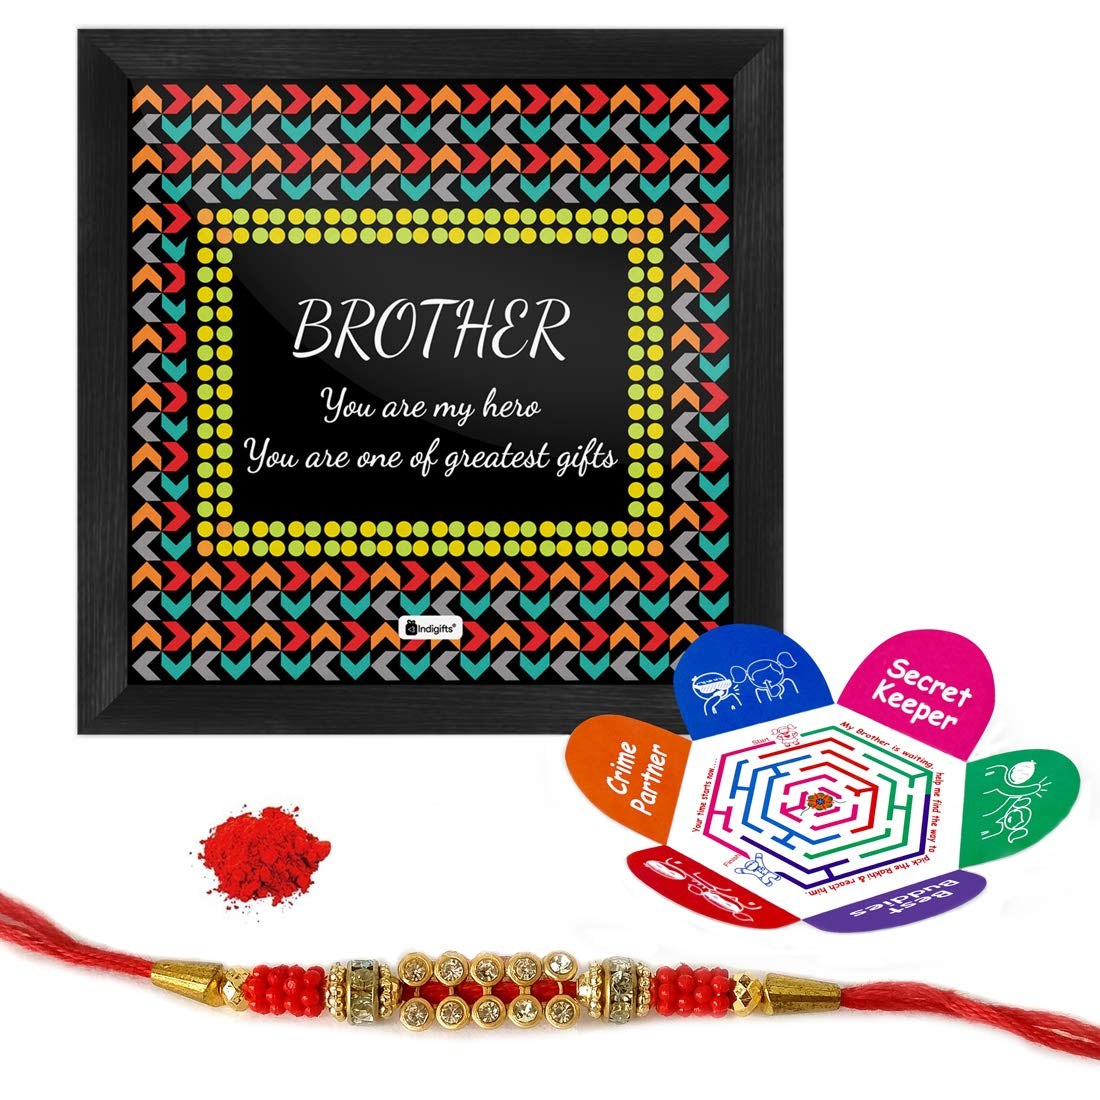 Indi ts Rakhi Gifts for Brother My Hero e of the Greatest Gifts